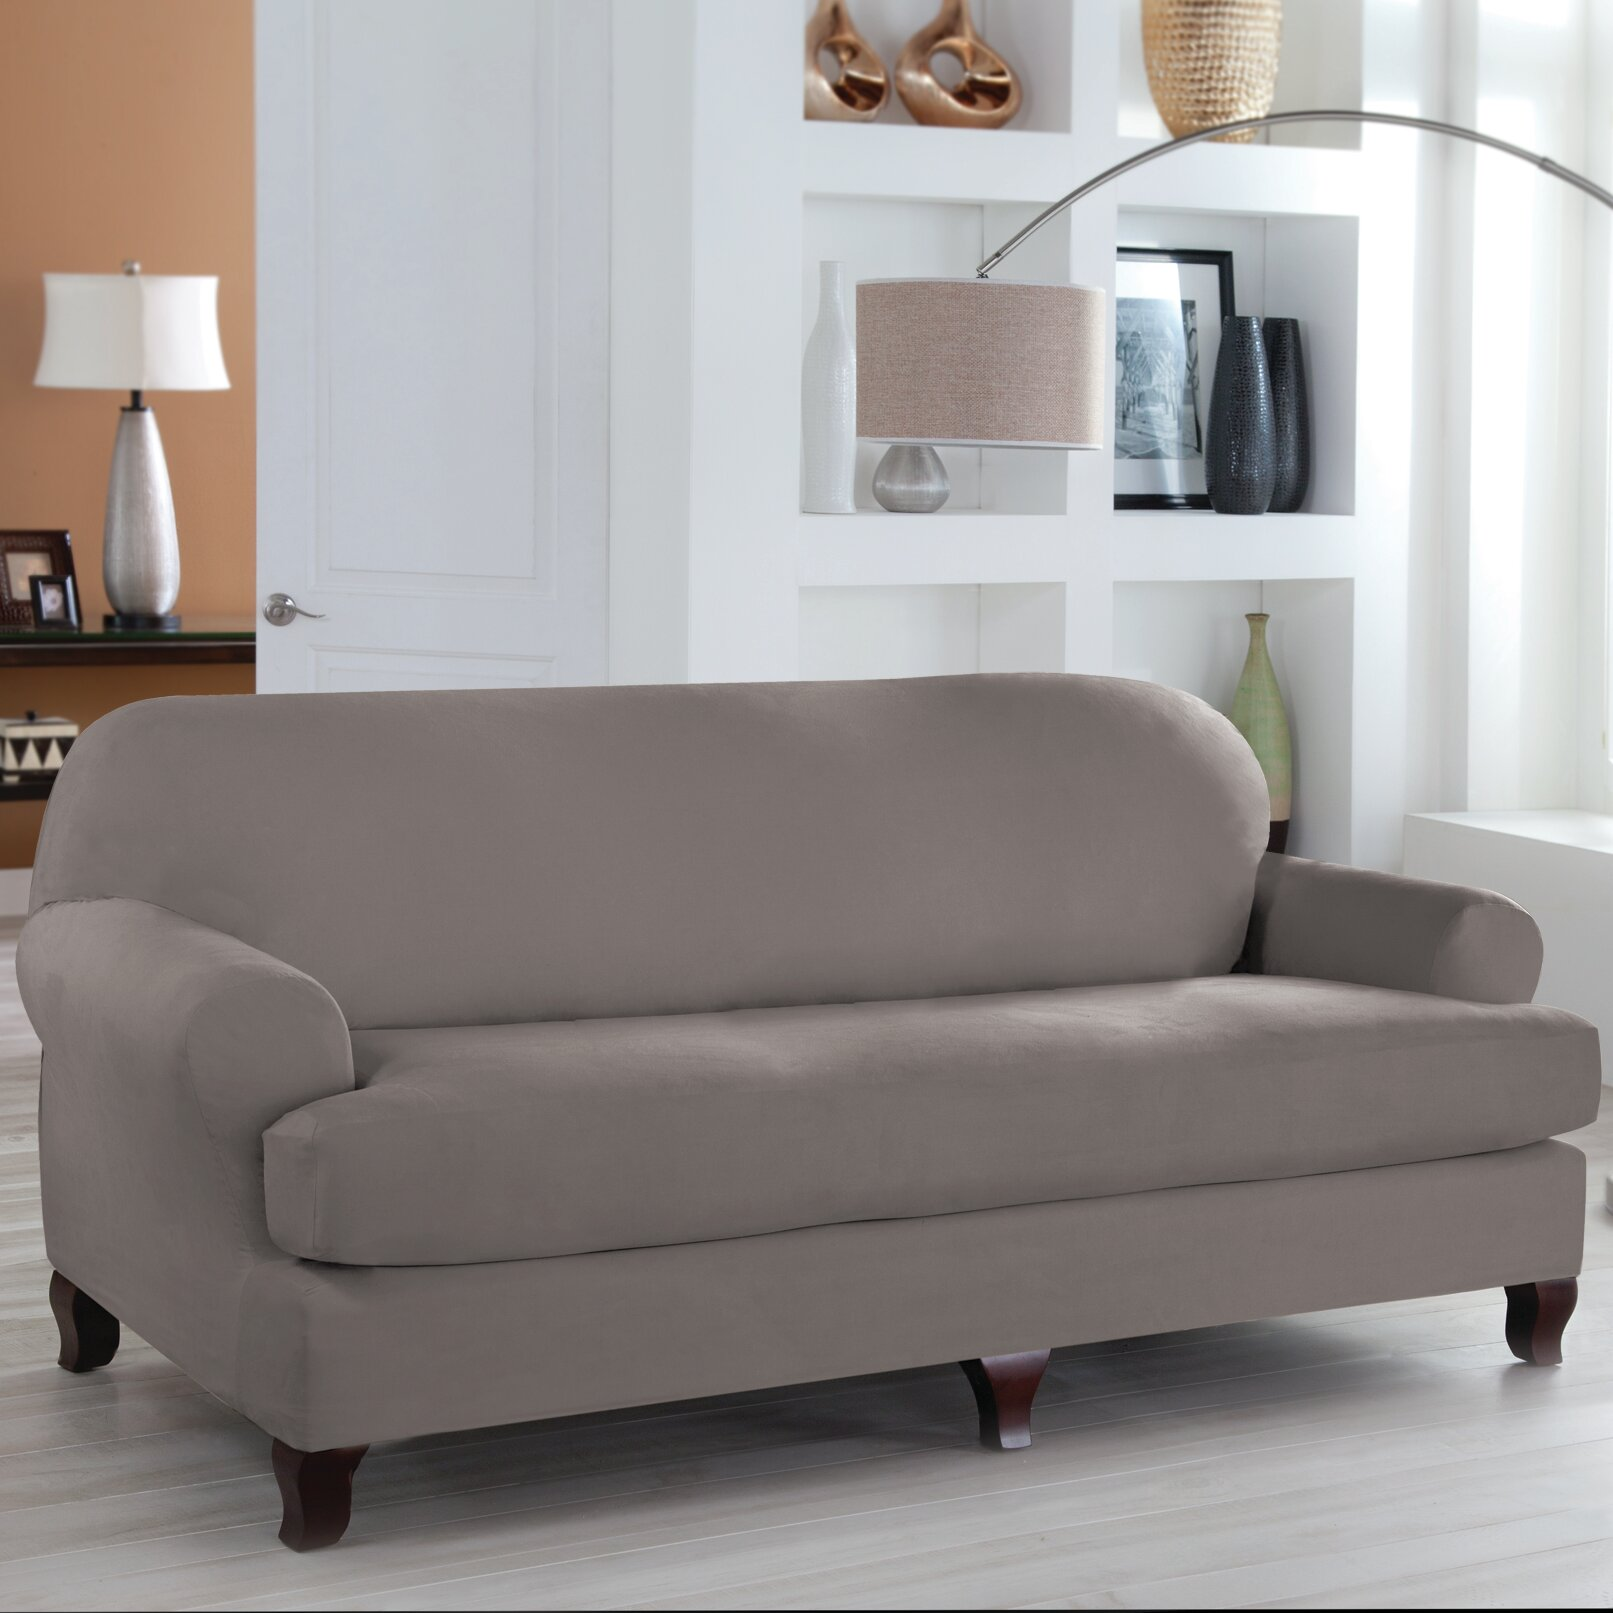 Red Barrel Studio T Cushion Sofa Slipcover Reviews Wayfair